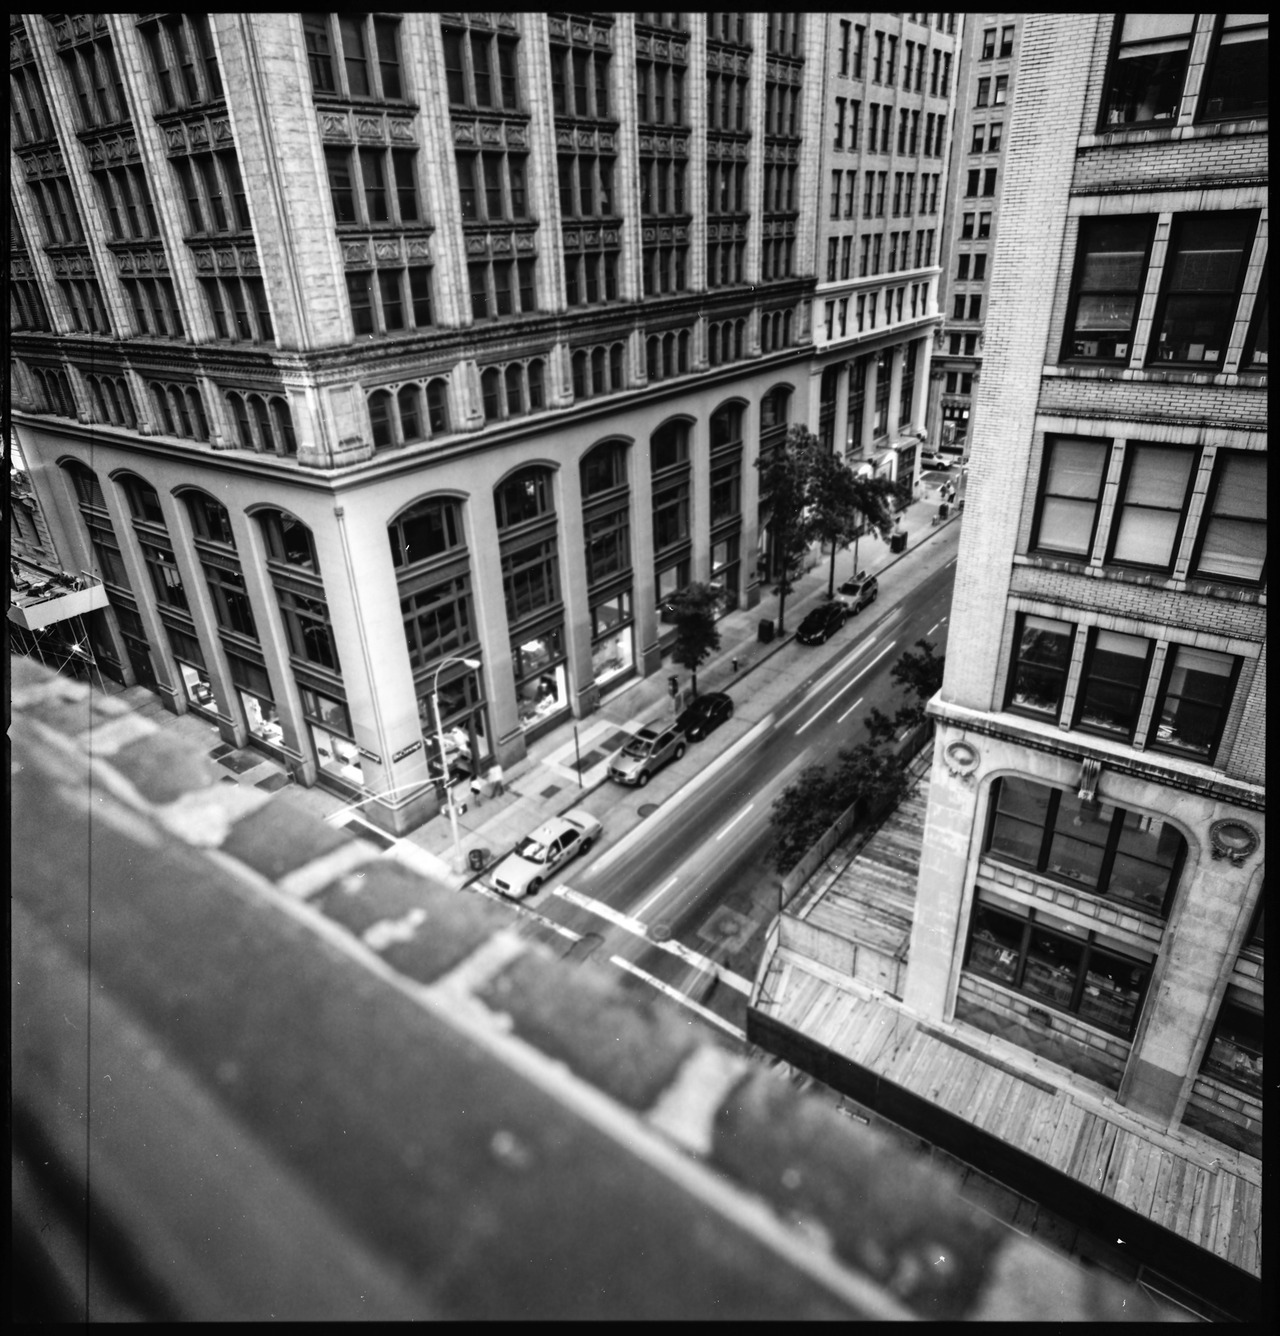 30th and Madison Hasselblad SWC Zeiss Biogon 38mm f/4.5 Ilford Delta Pro 100 in HC-110 B CanoScan 8800F